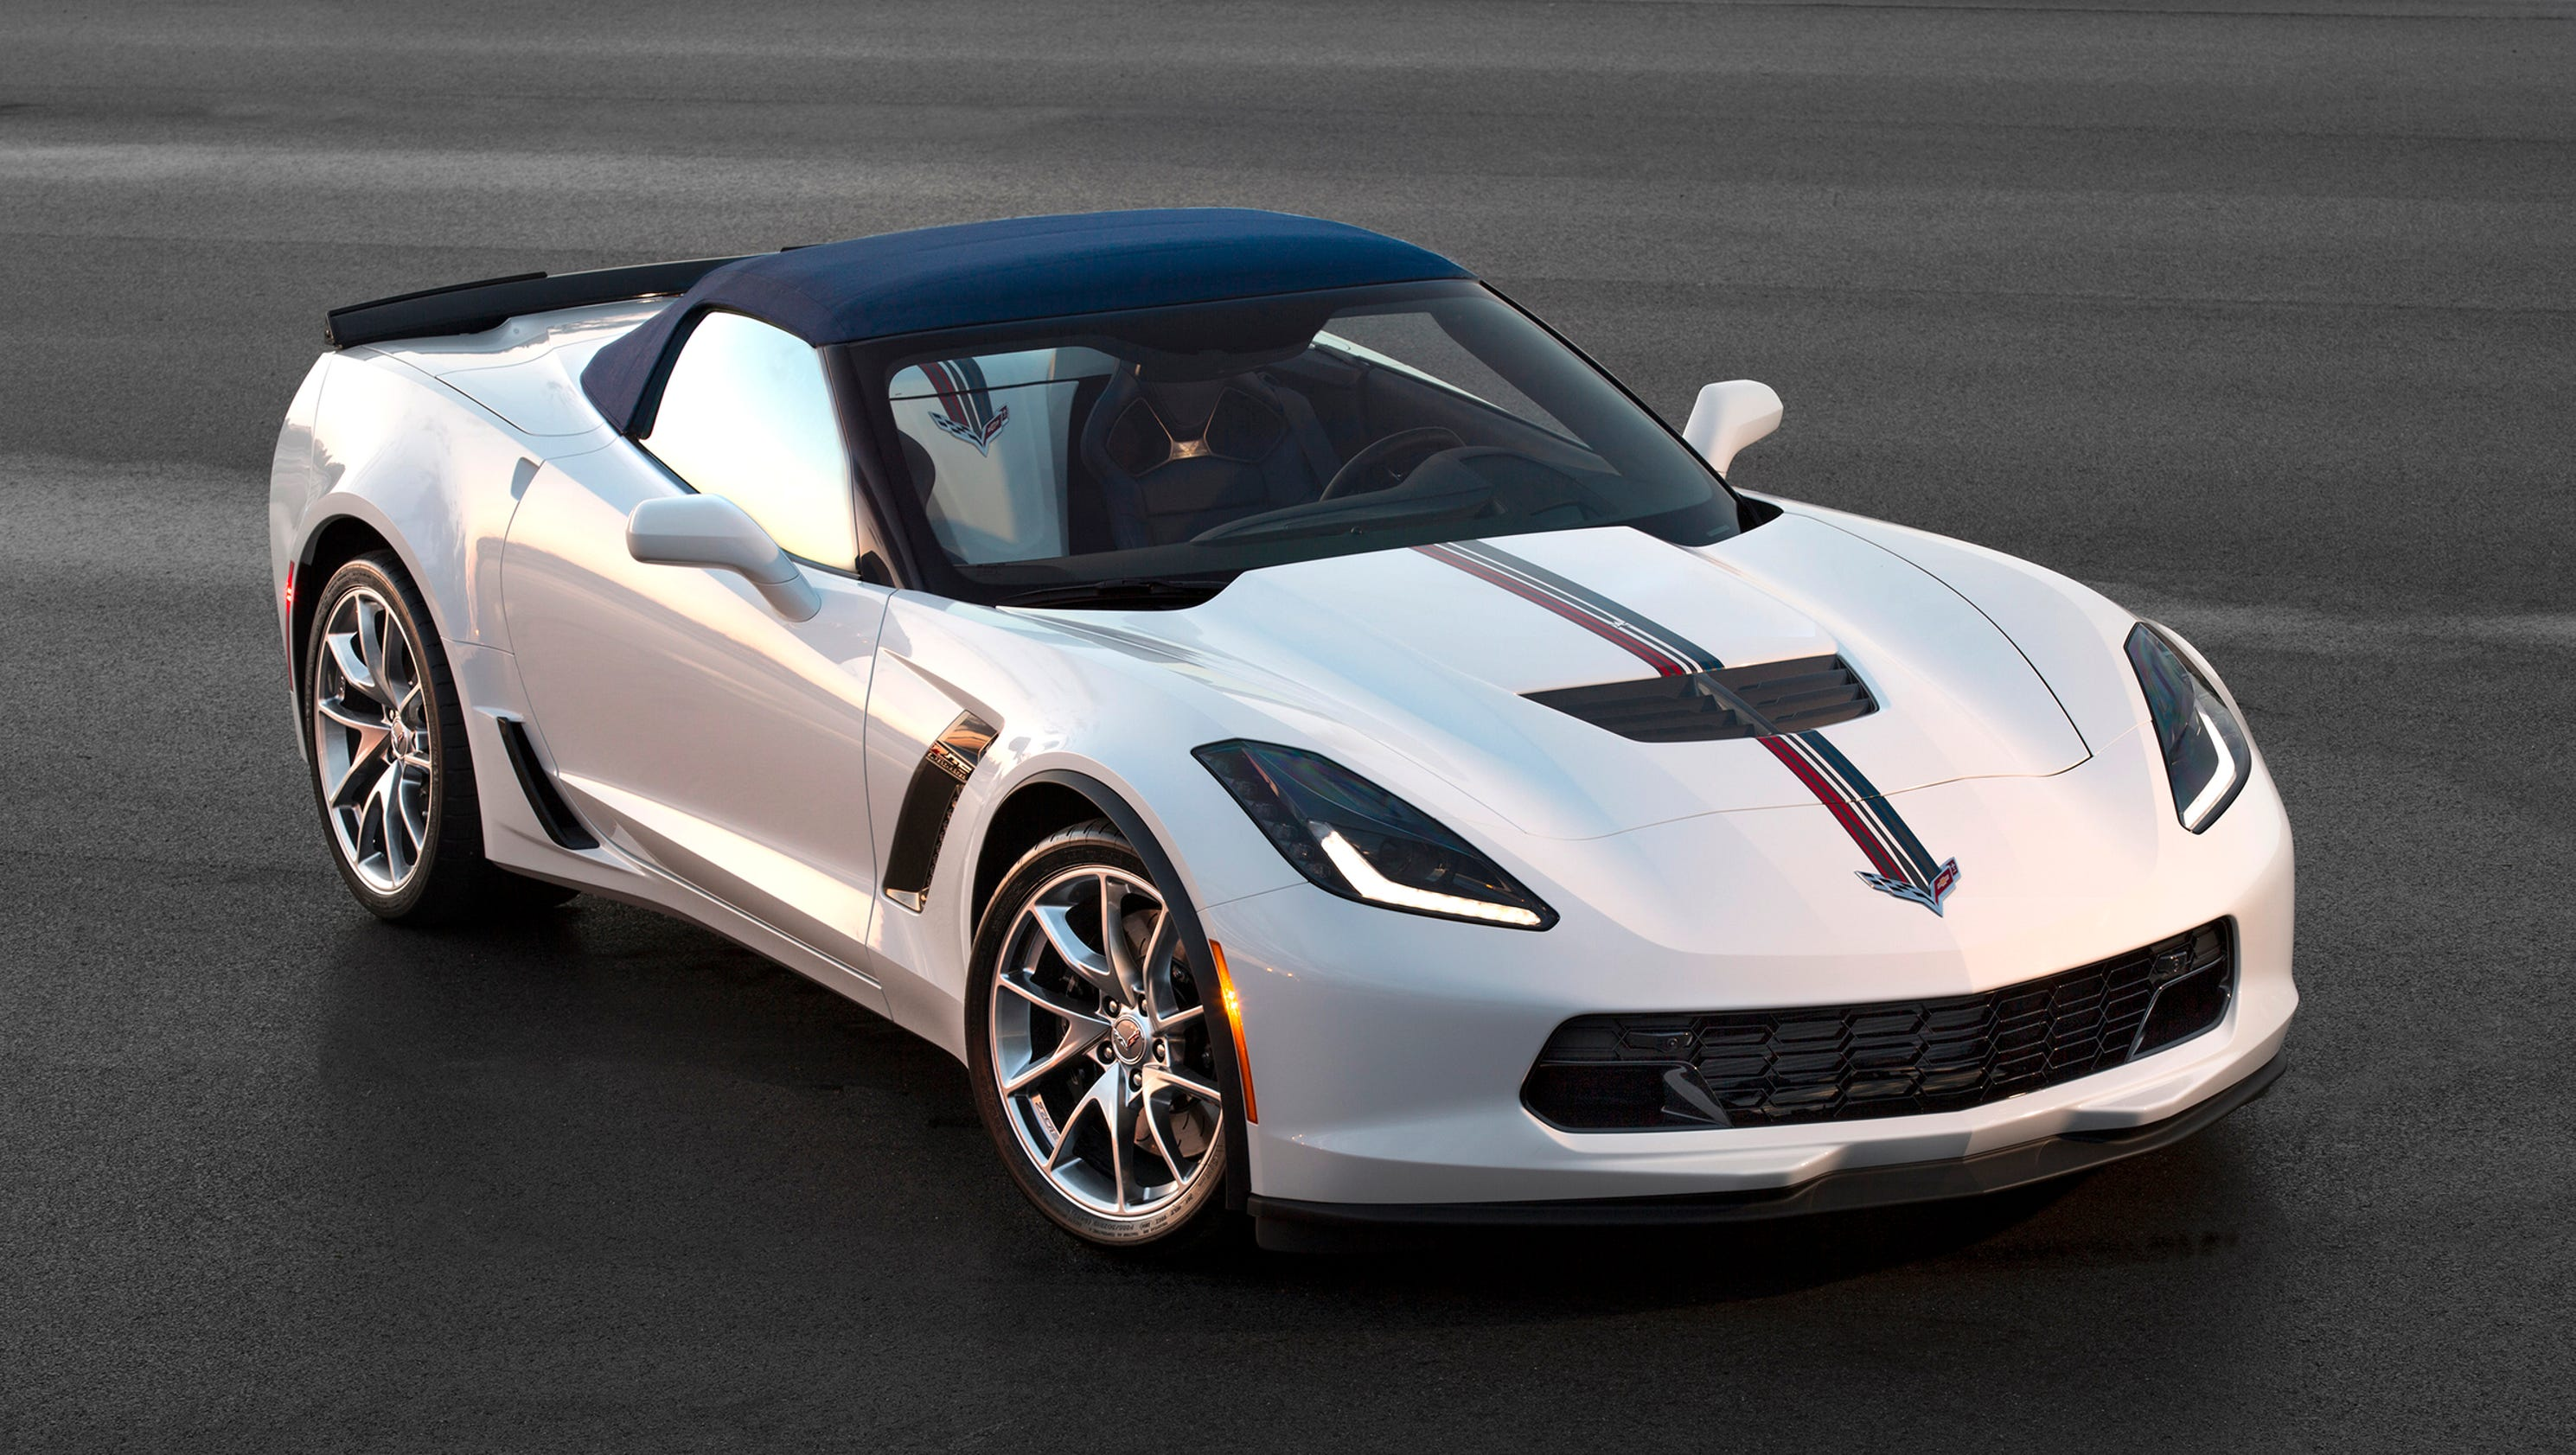 cars money at price mark convertible performance corvette delivers models phelan twilightblue and vette chevrolet bargain looks supercar story